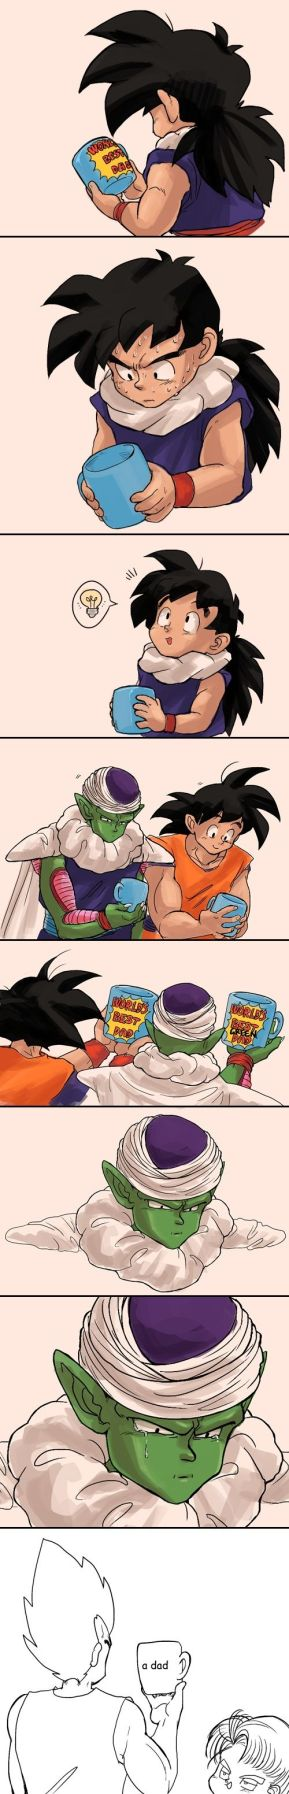 dragon ballz3